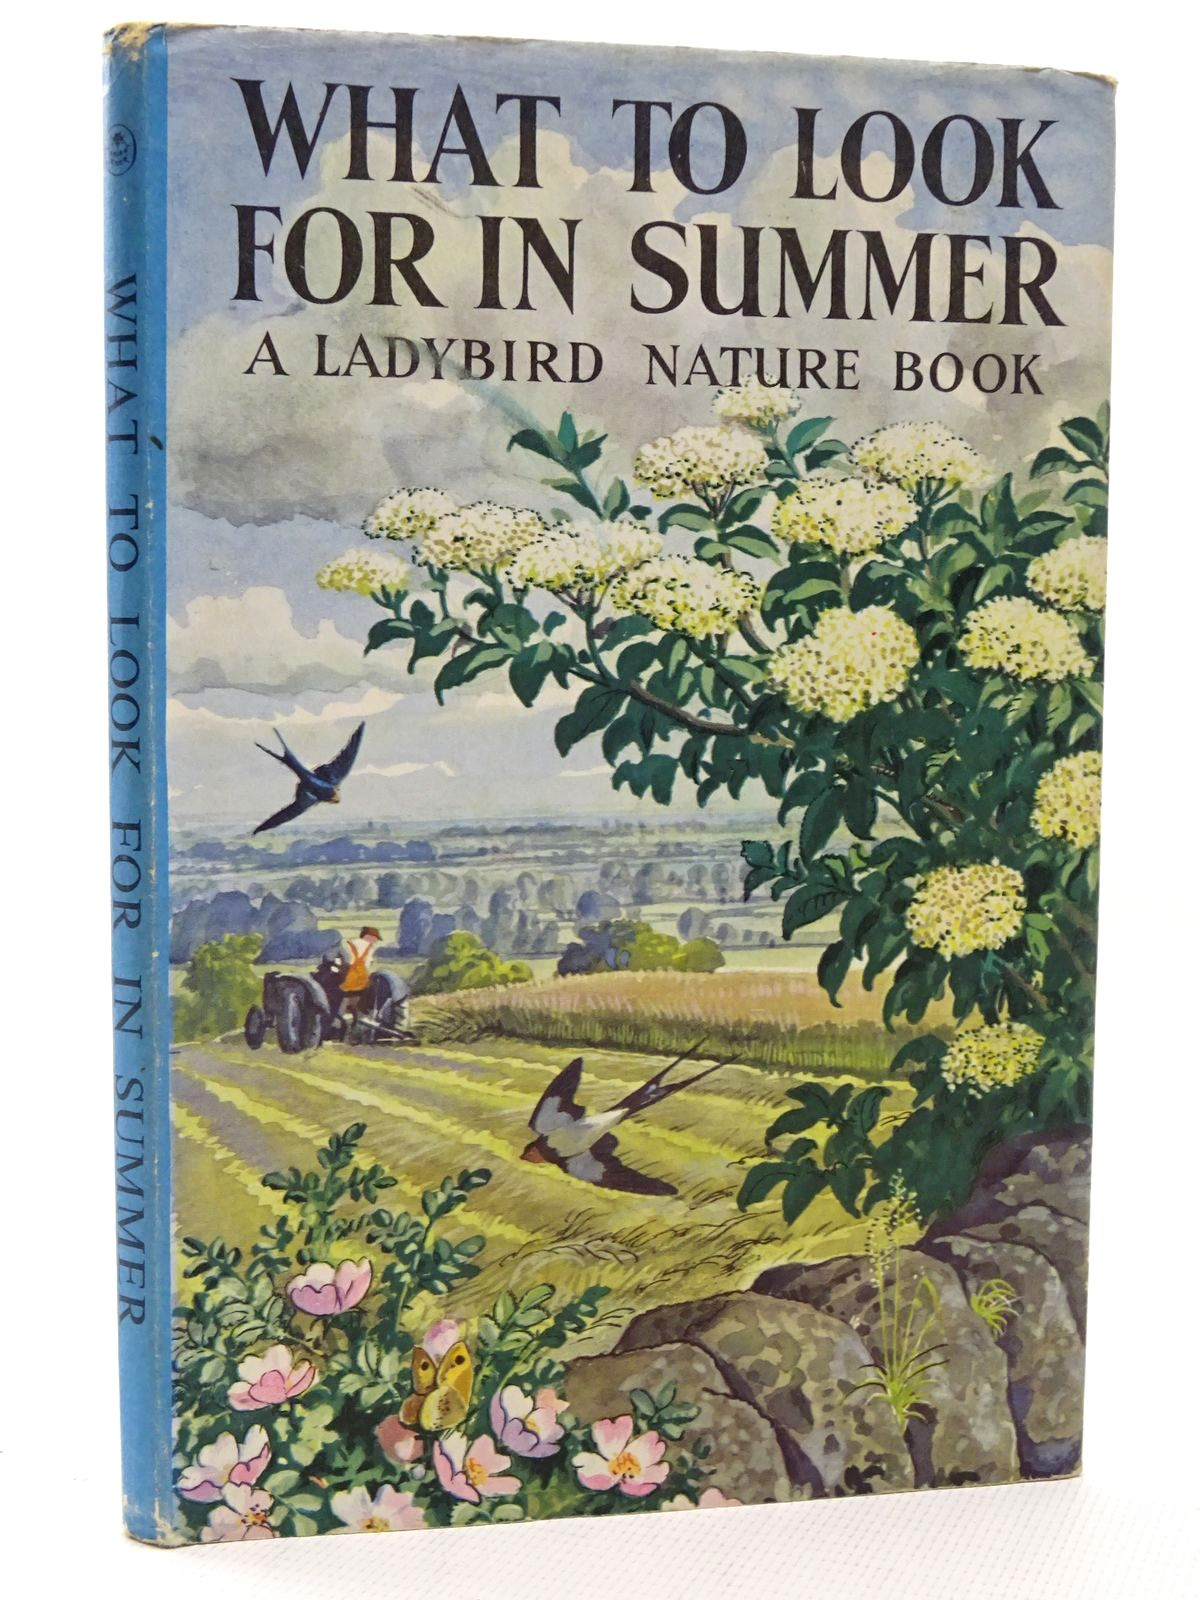 Photo of WHAT TO LOOK FOR IN SUMMER written by Watson, E.L. Grant illustrated by Tunnicliffe, C.F. published by Wills & Hepworth Ltd. (STOCK CODE: 2124228)  for sale by Stella & Rose's Books